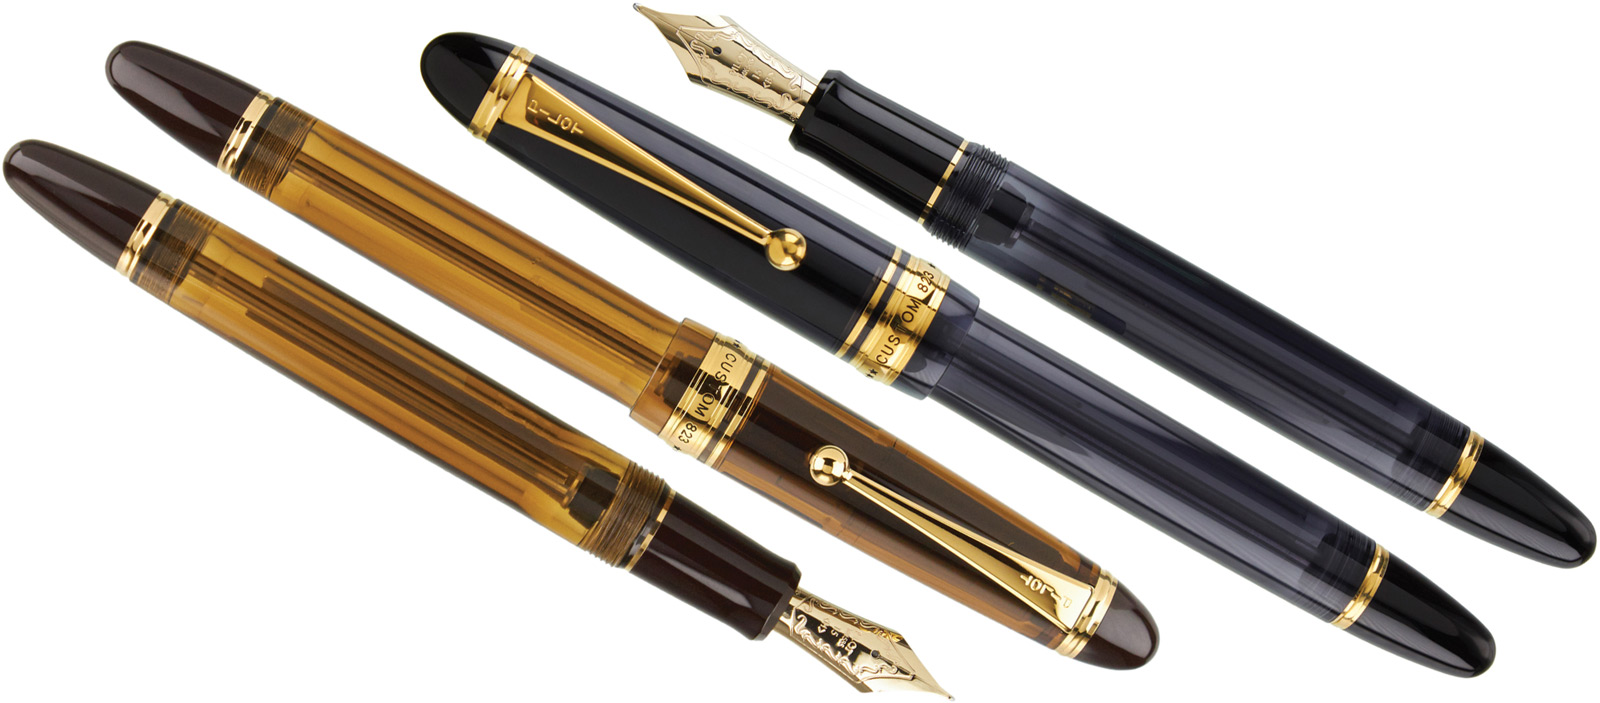 Pilot Custom 823 Fountain Pen in Smoke and Amber